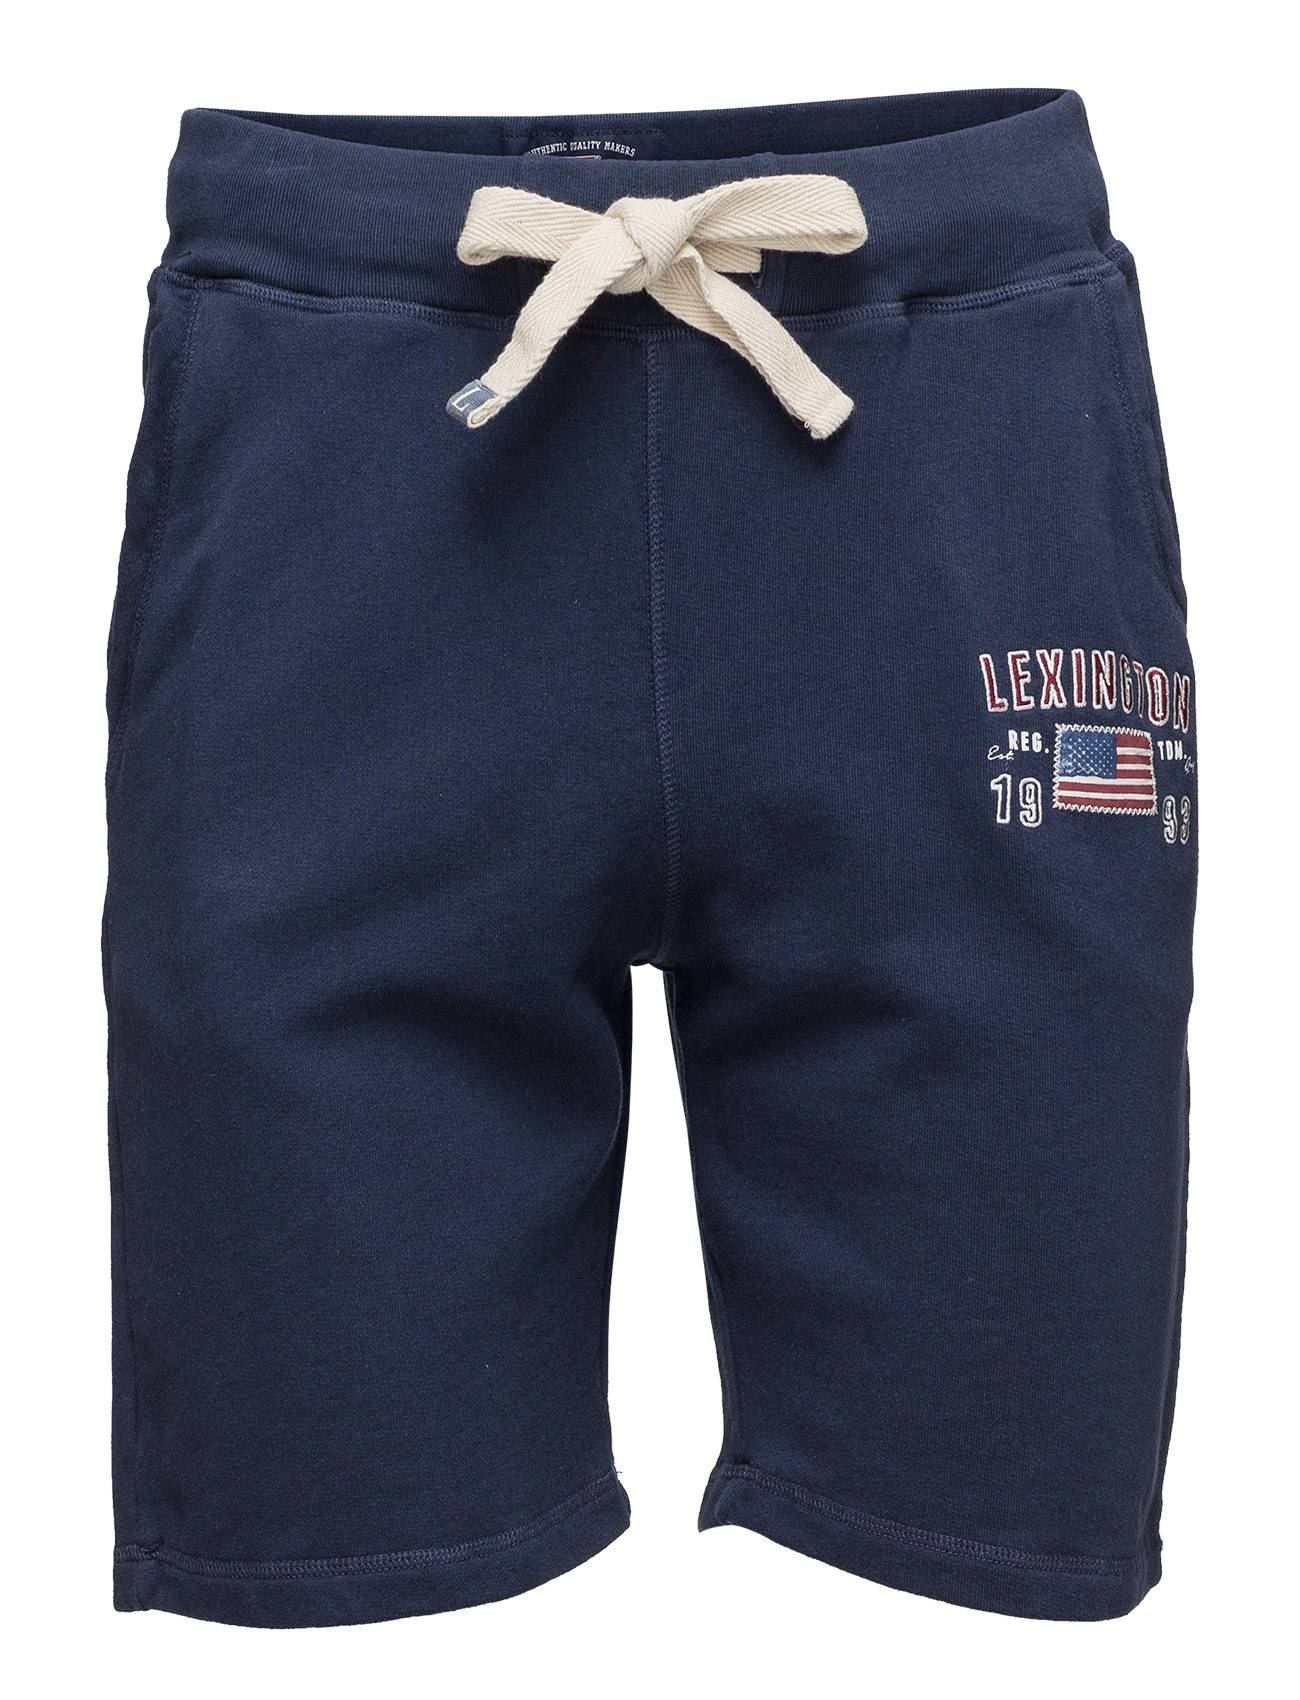 Lexington Company James Jersey Shorts